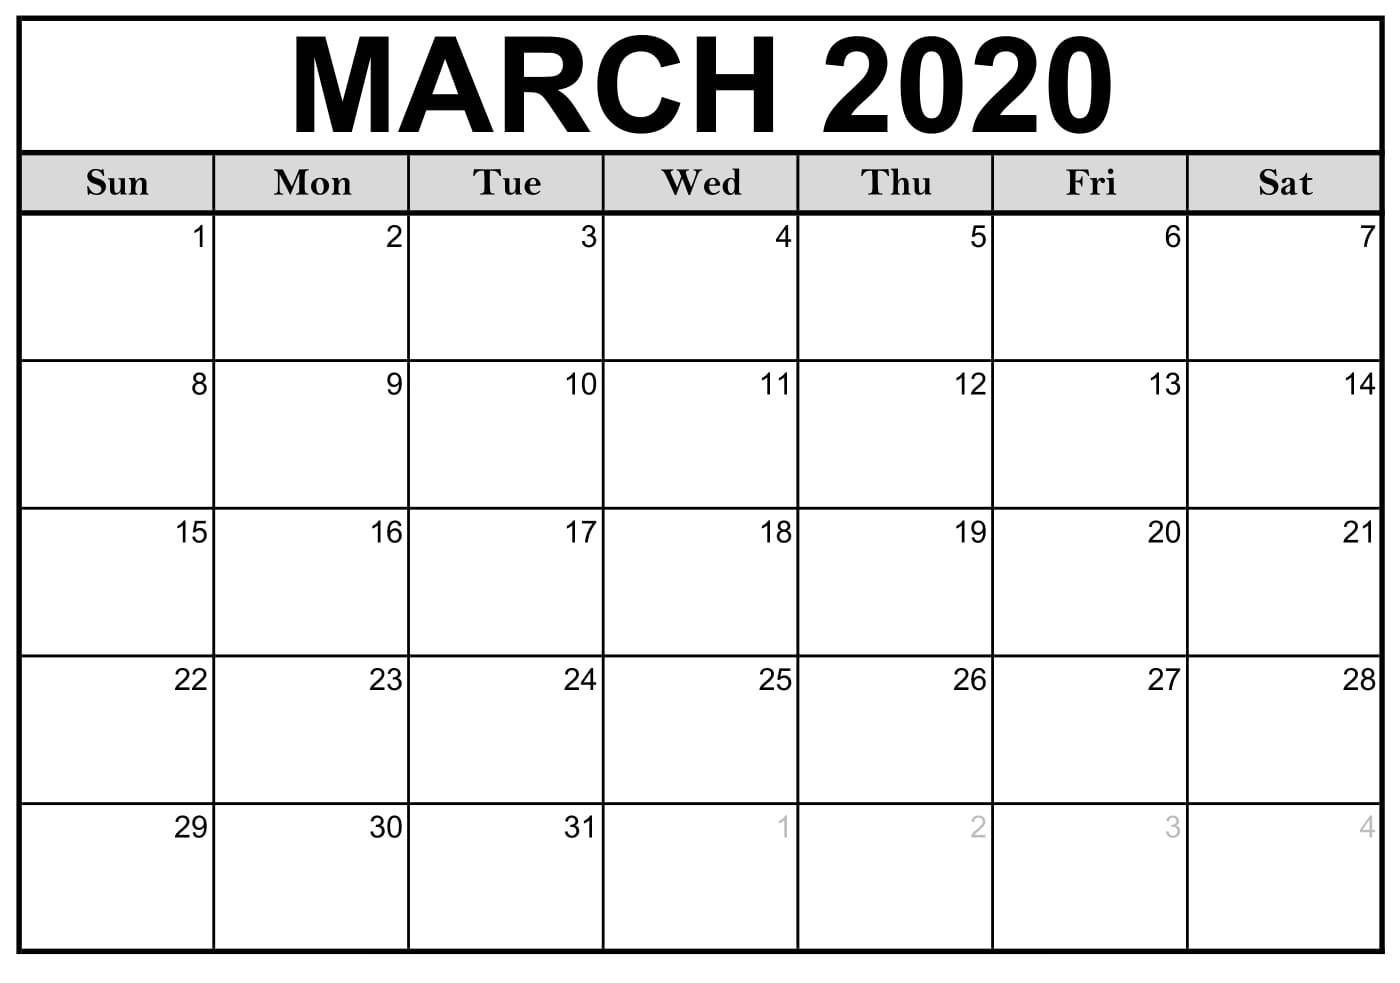 Fillable March 2020 Calendar Template Word, Pdf, Excel With Free June 2020 Activities Calendar Template Assisted Living Editable